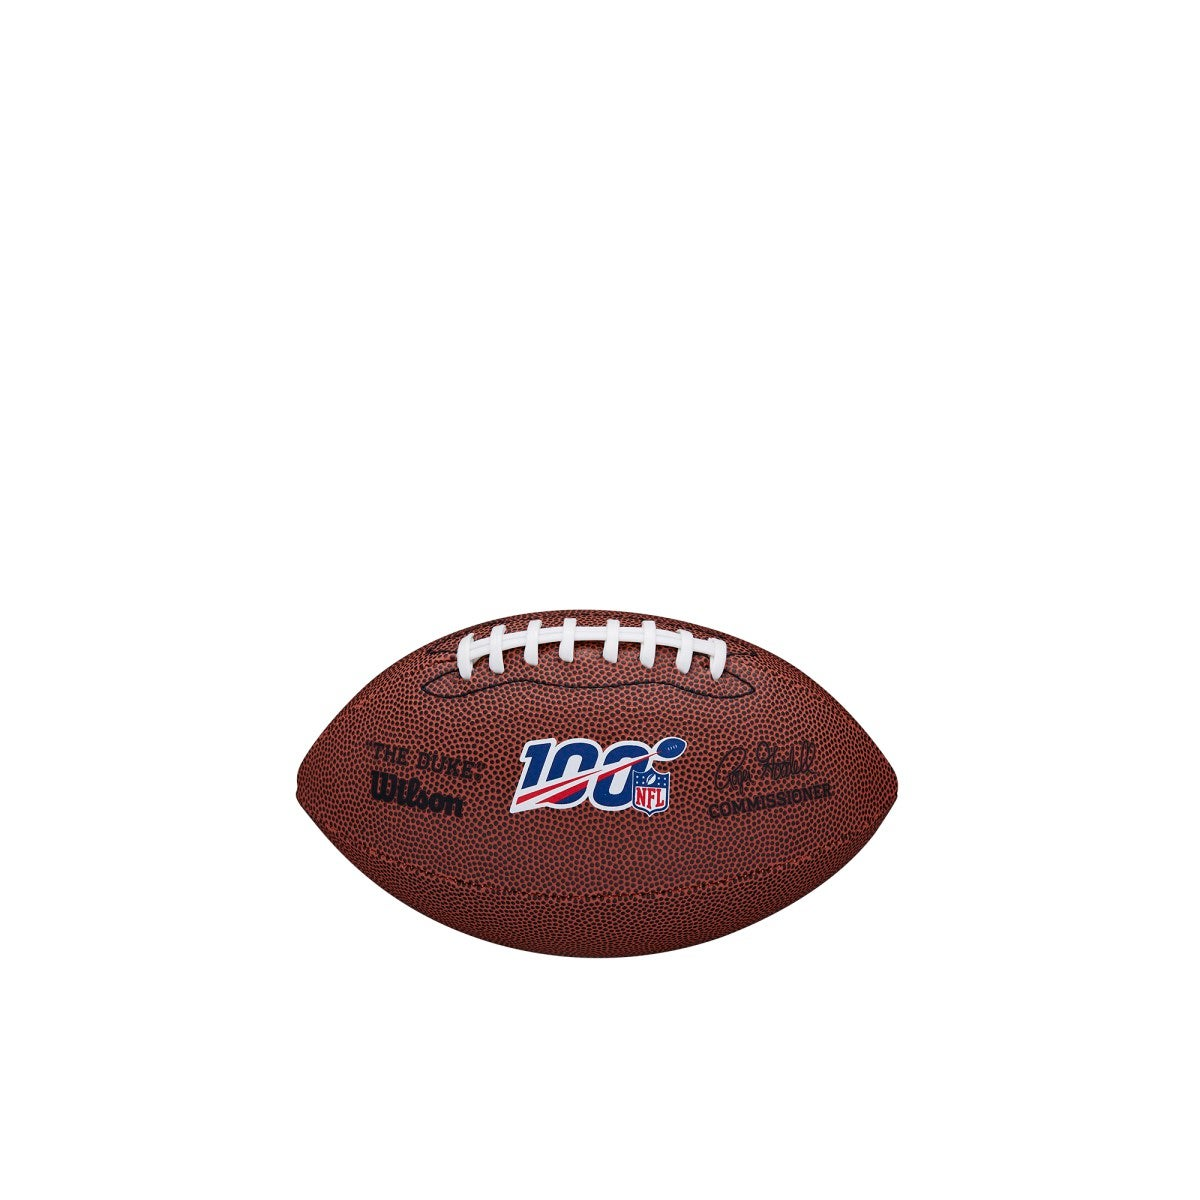 NFL 100 Mini Football